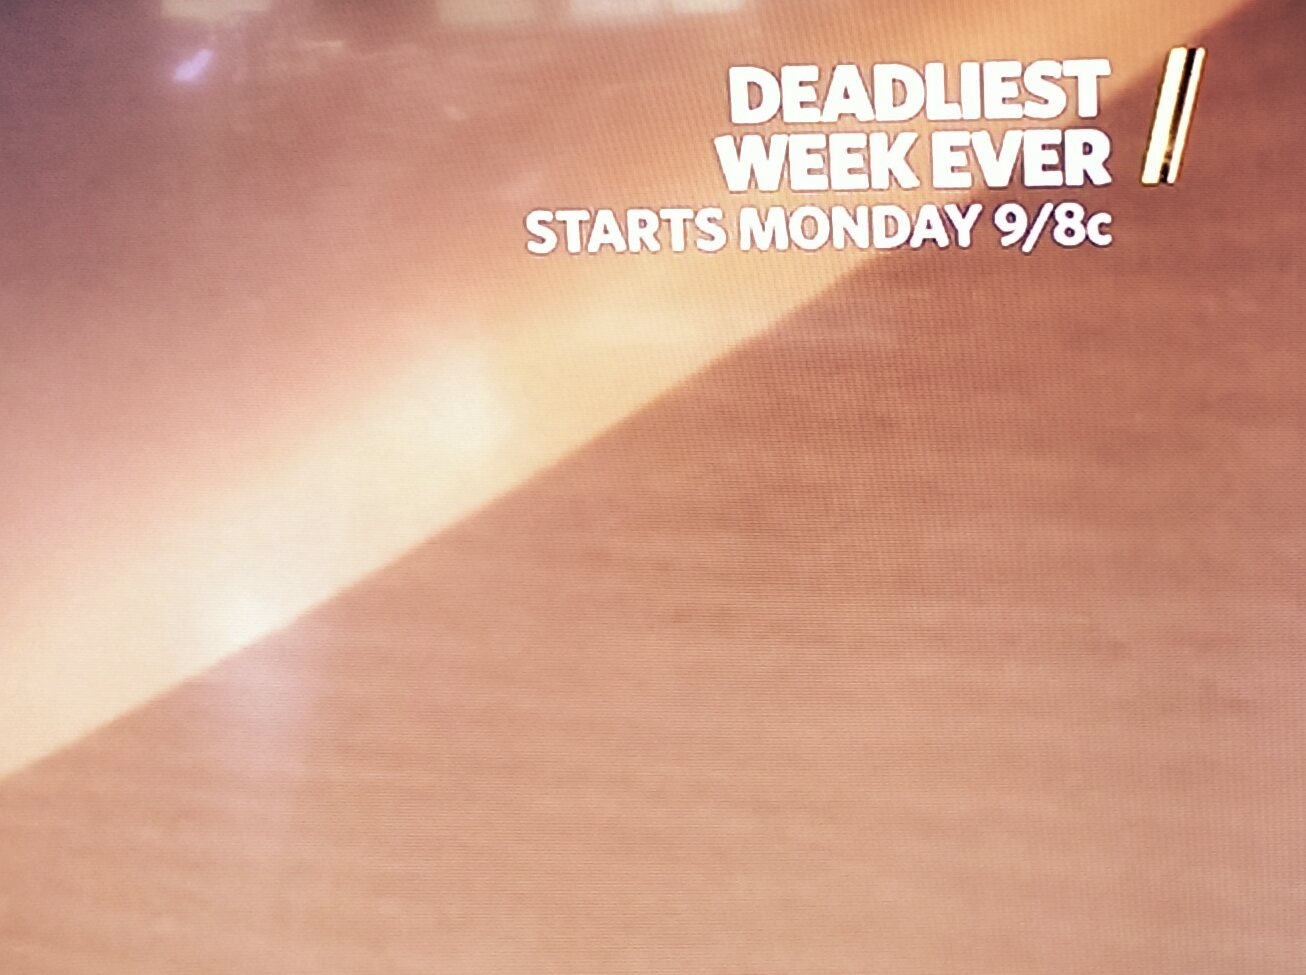 Deadliest Week Ever premiers Monday at 9.